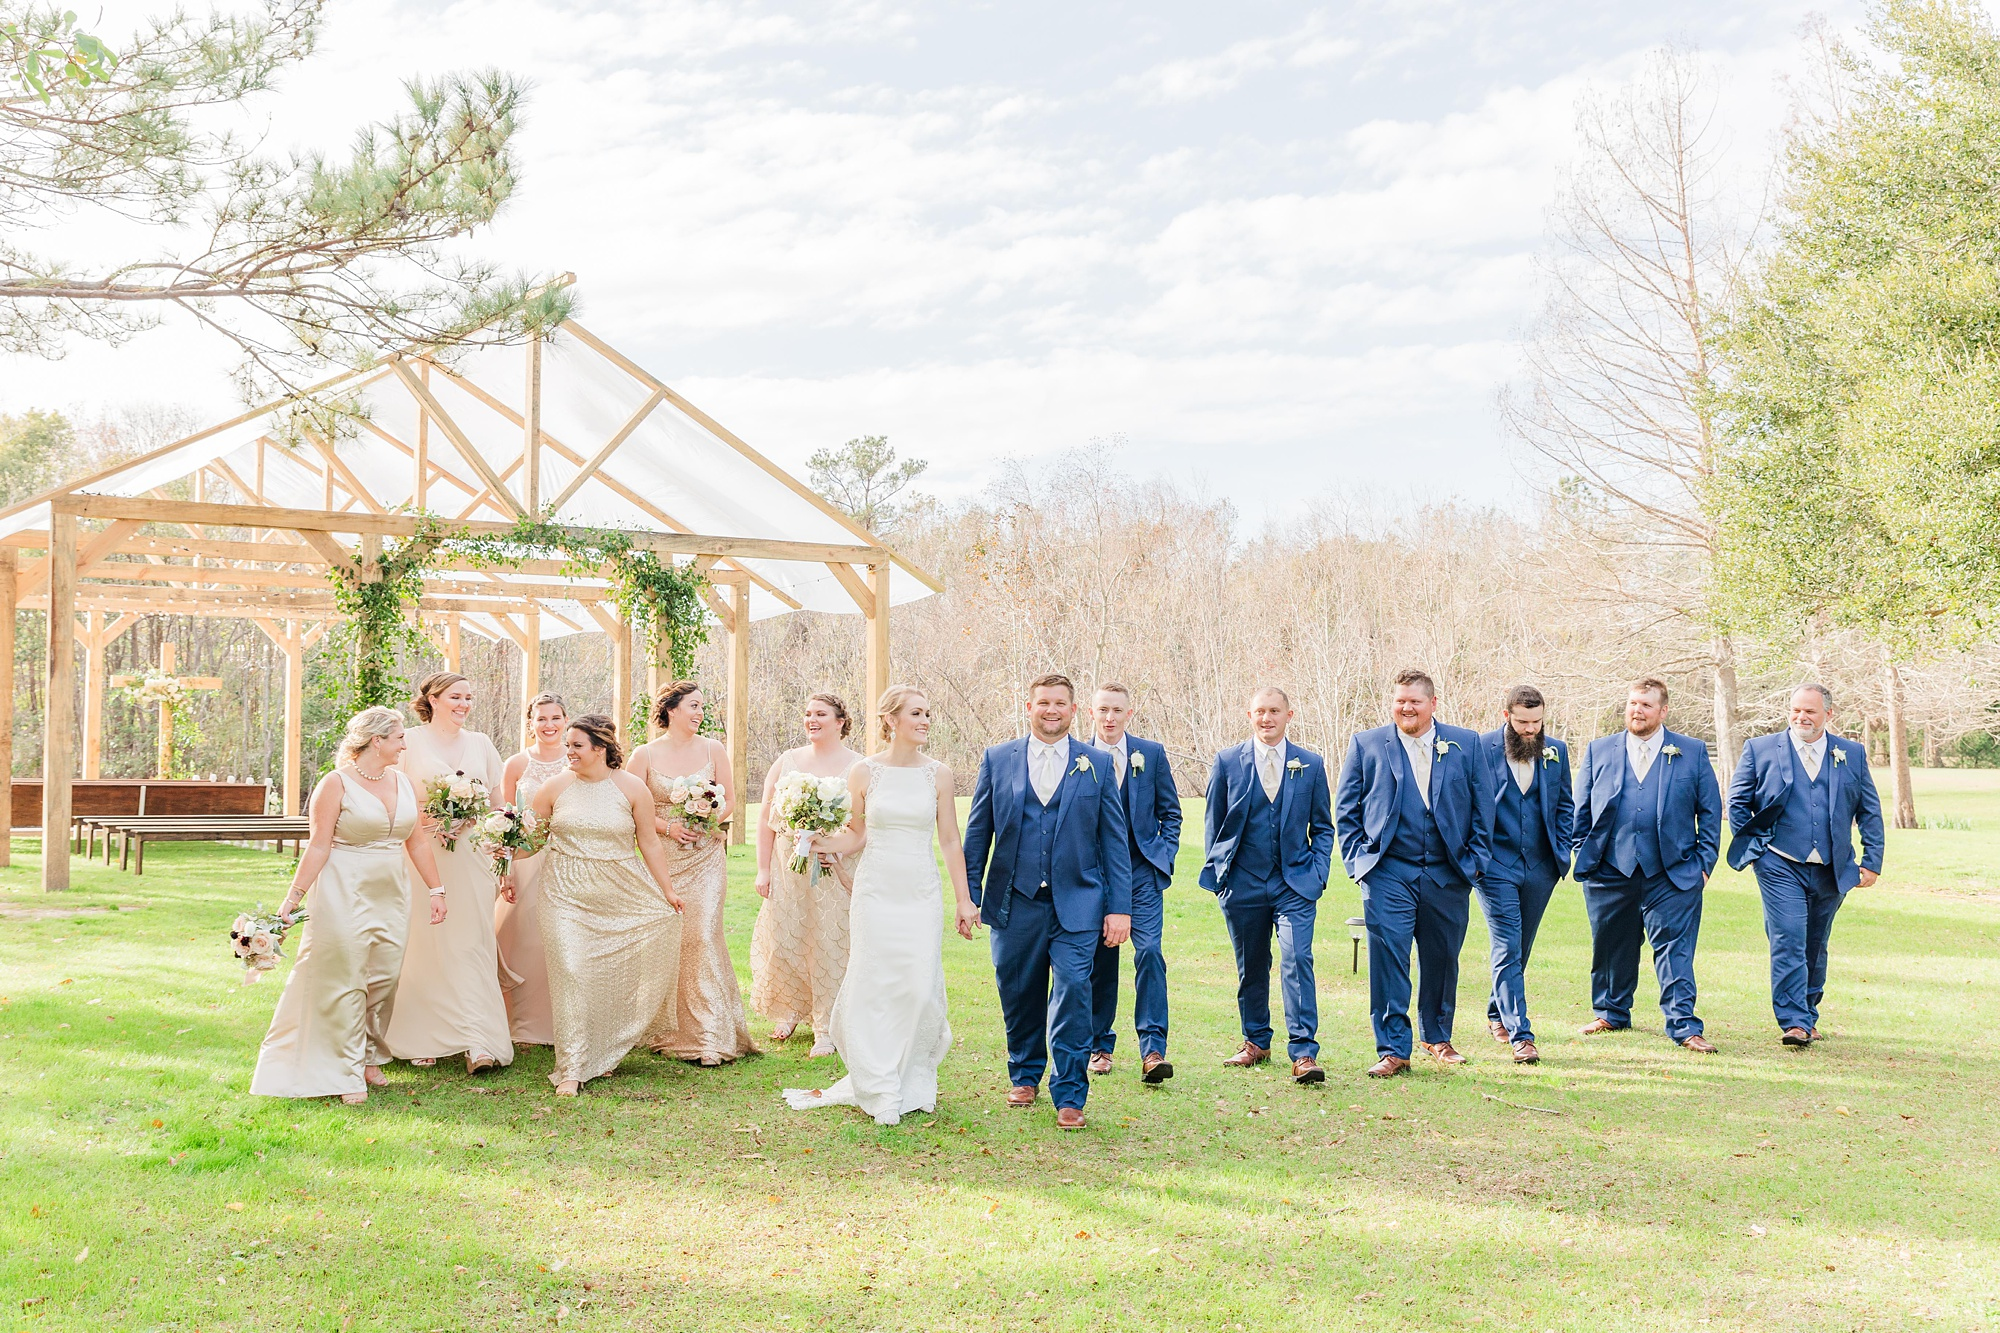 bride and groom walk with bridal party in front of wooden open air chapel